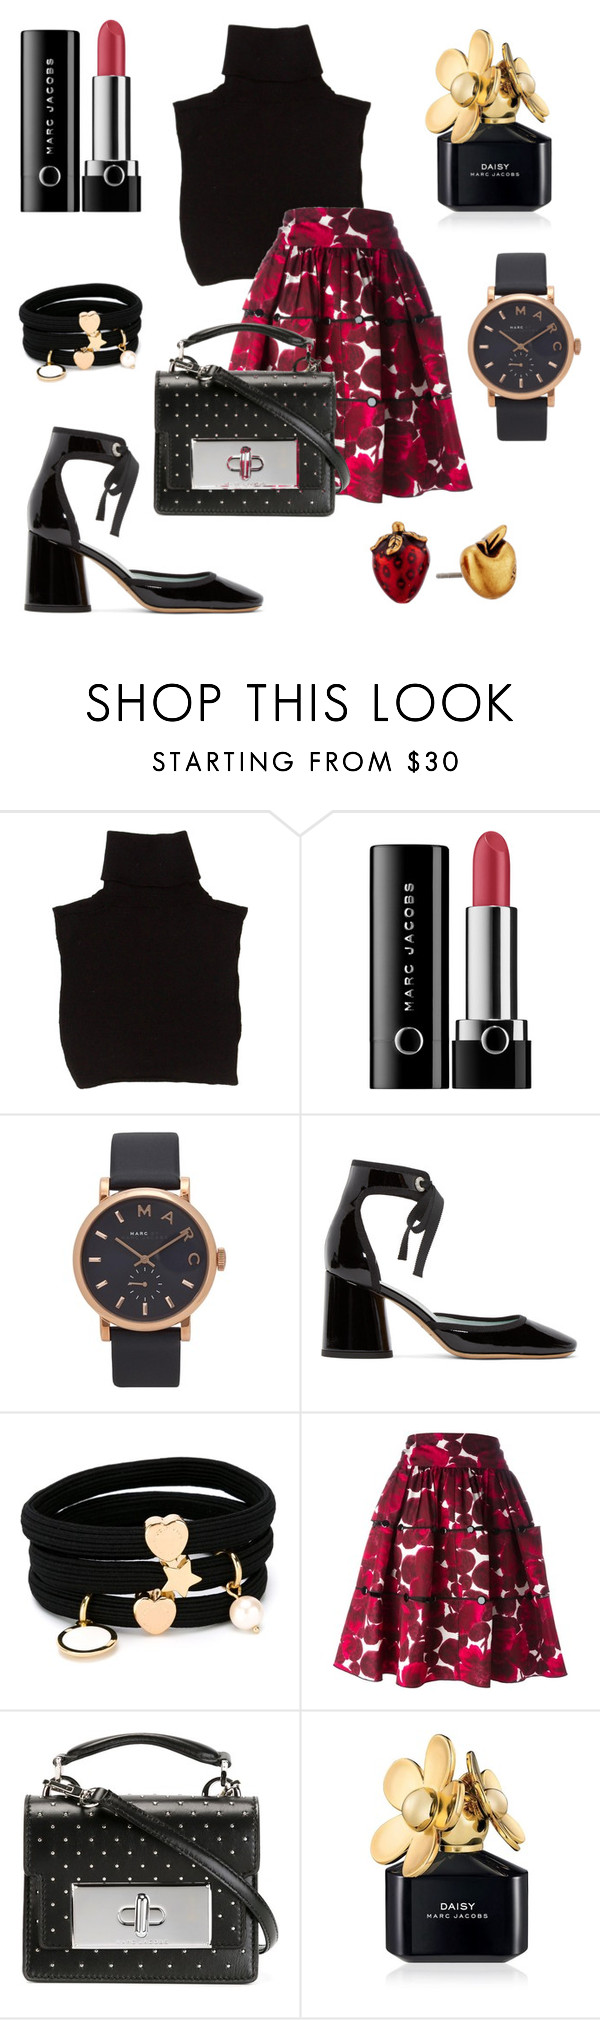 """Love Marc"" by fashioncinderella on Polyvore featuring мода и Marc Jacobs"